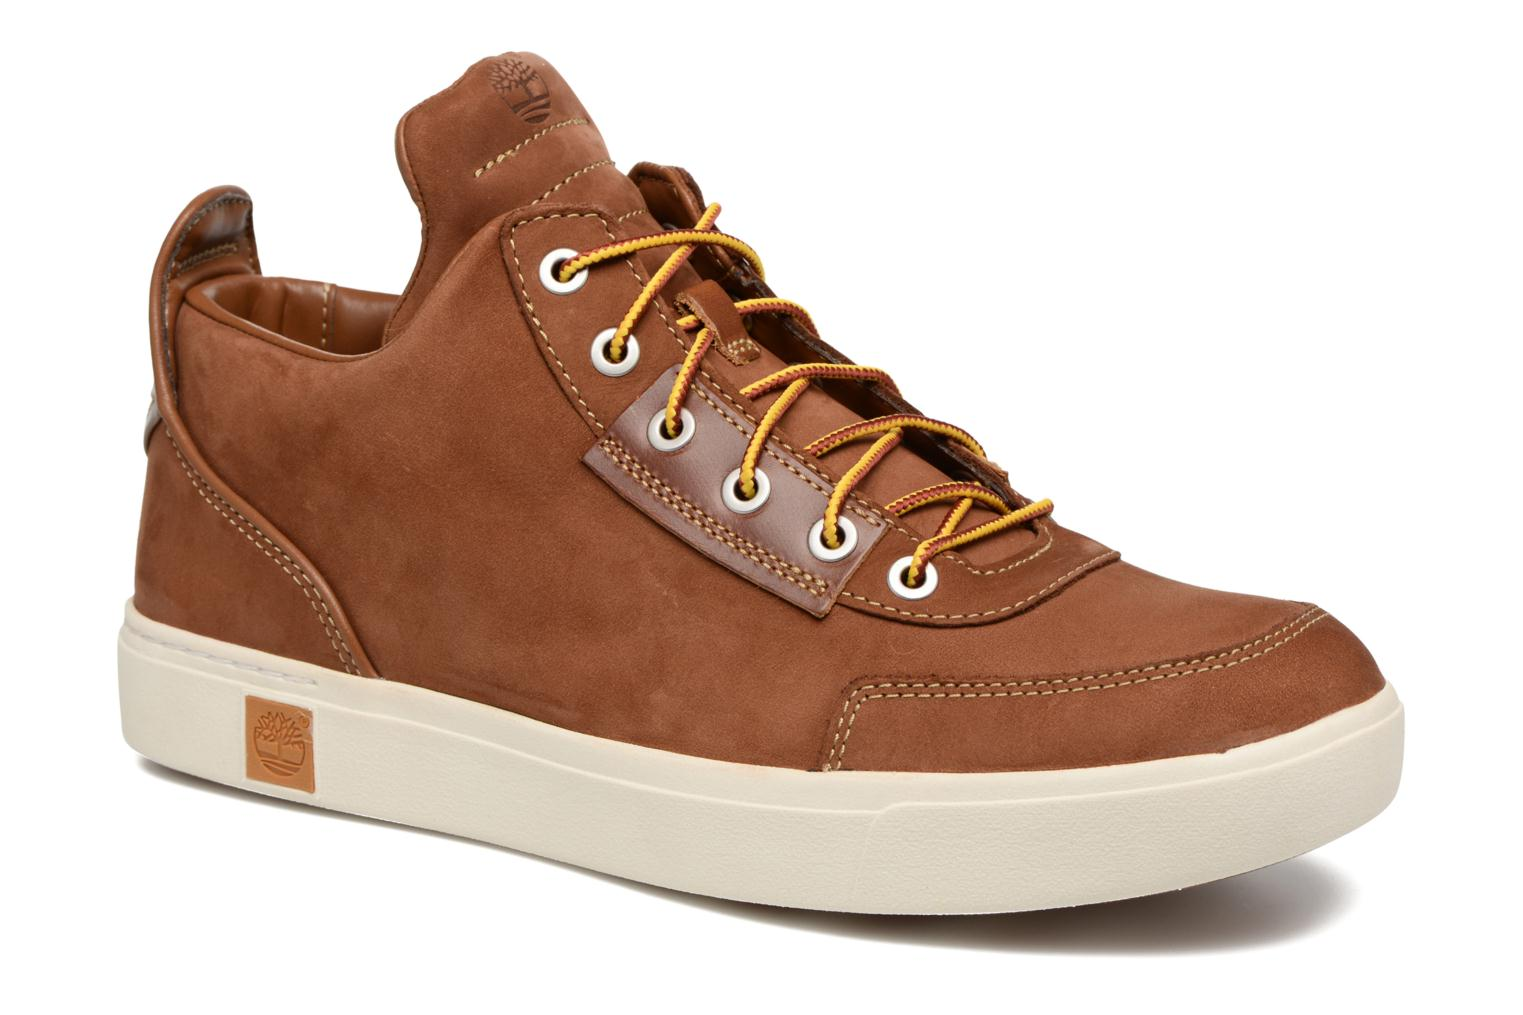 sneakers-amherst-high-top-chukka-by-timberland